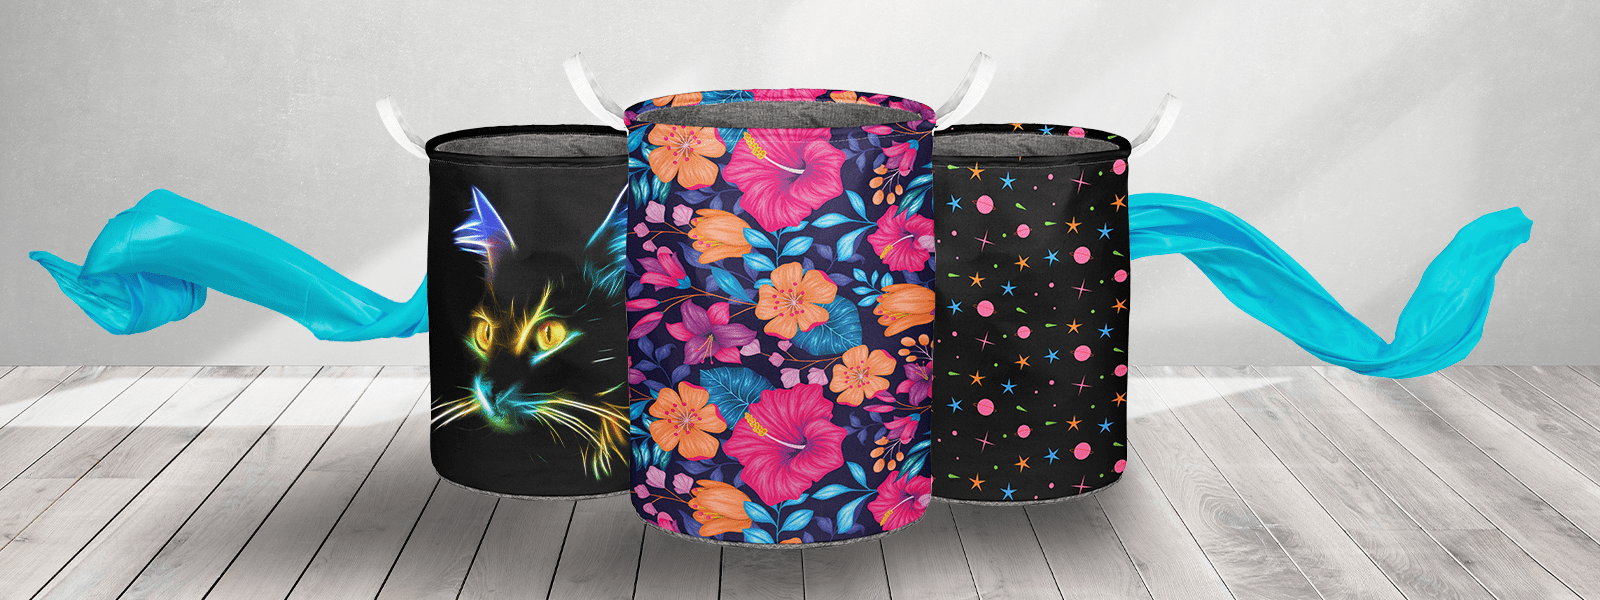 Our Brand New Laundry Baskets You'll Love